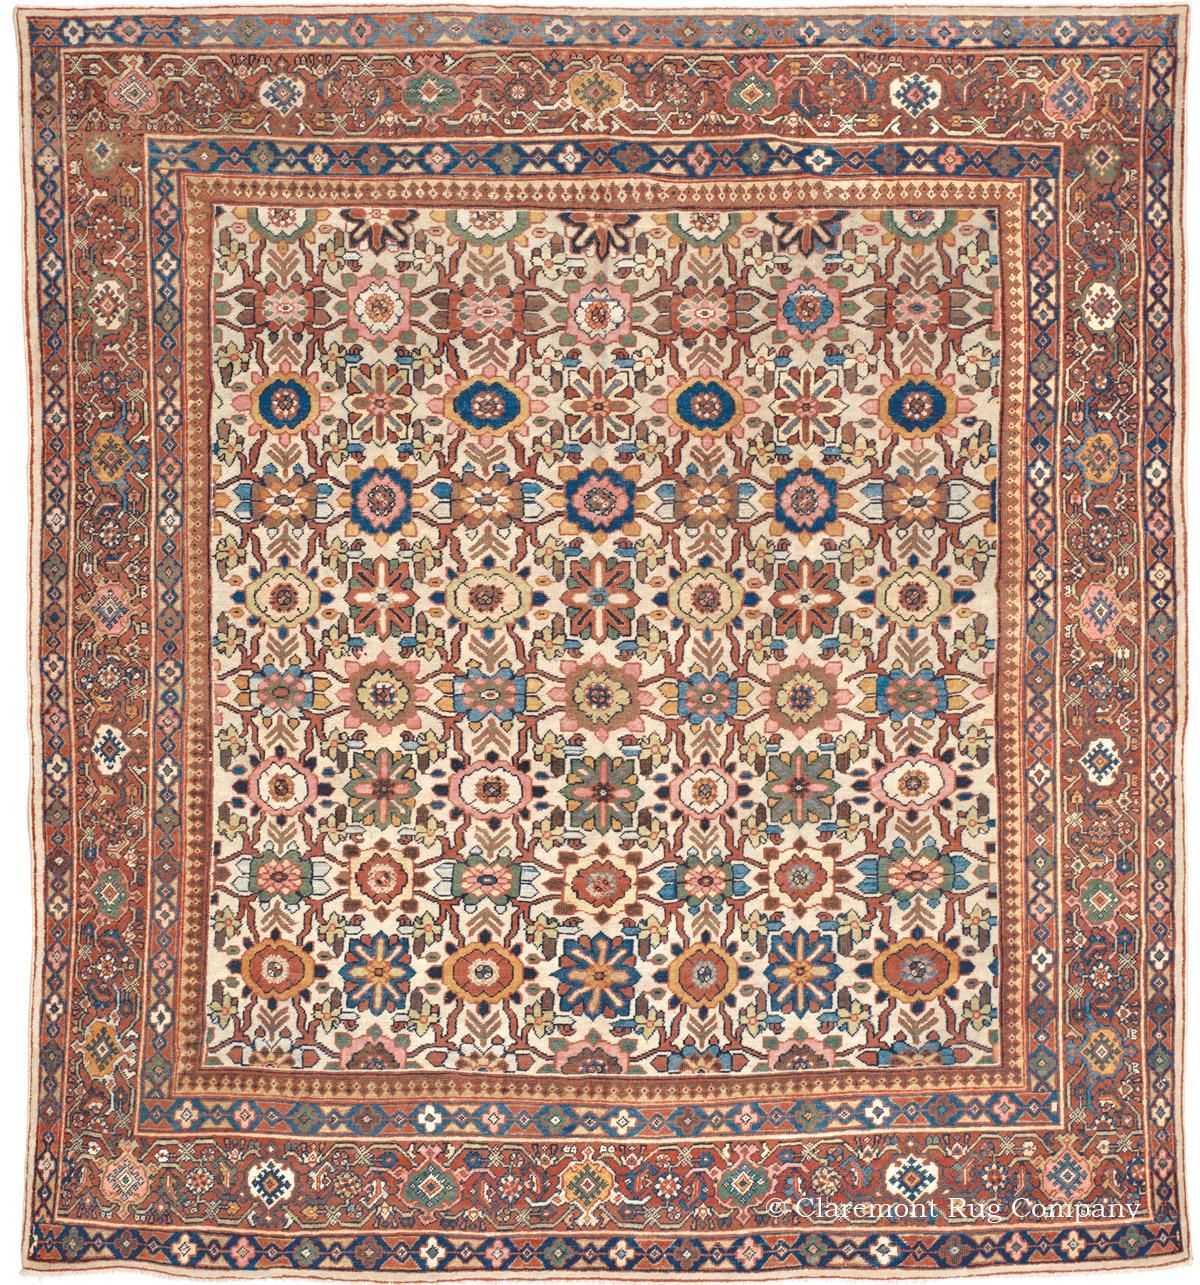 Mahal West Central Persian 11ft 2in X 12ft 0in Circa 1900 Rugs On Carpet Persian Carpet Simple Carpets